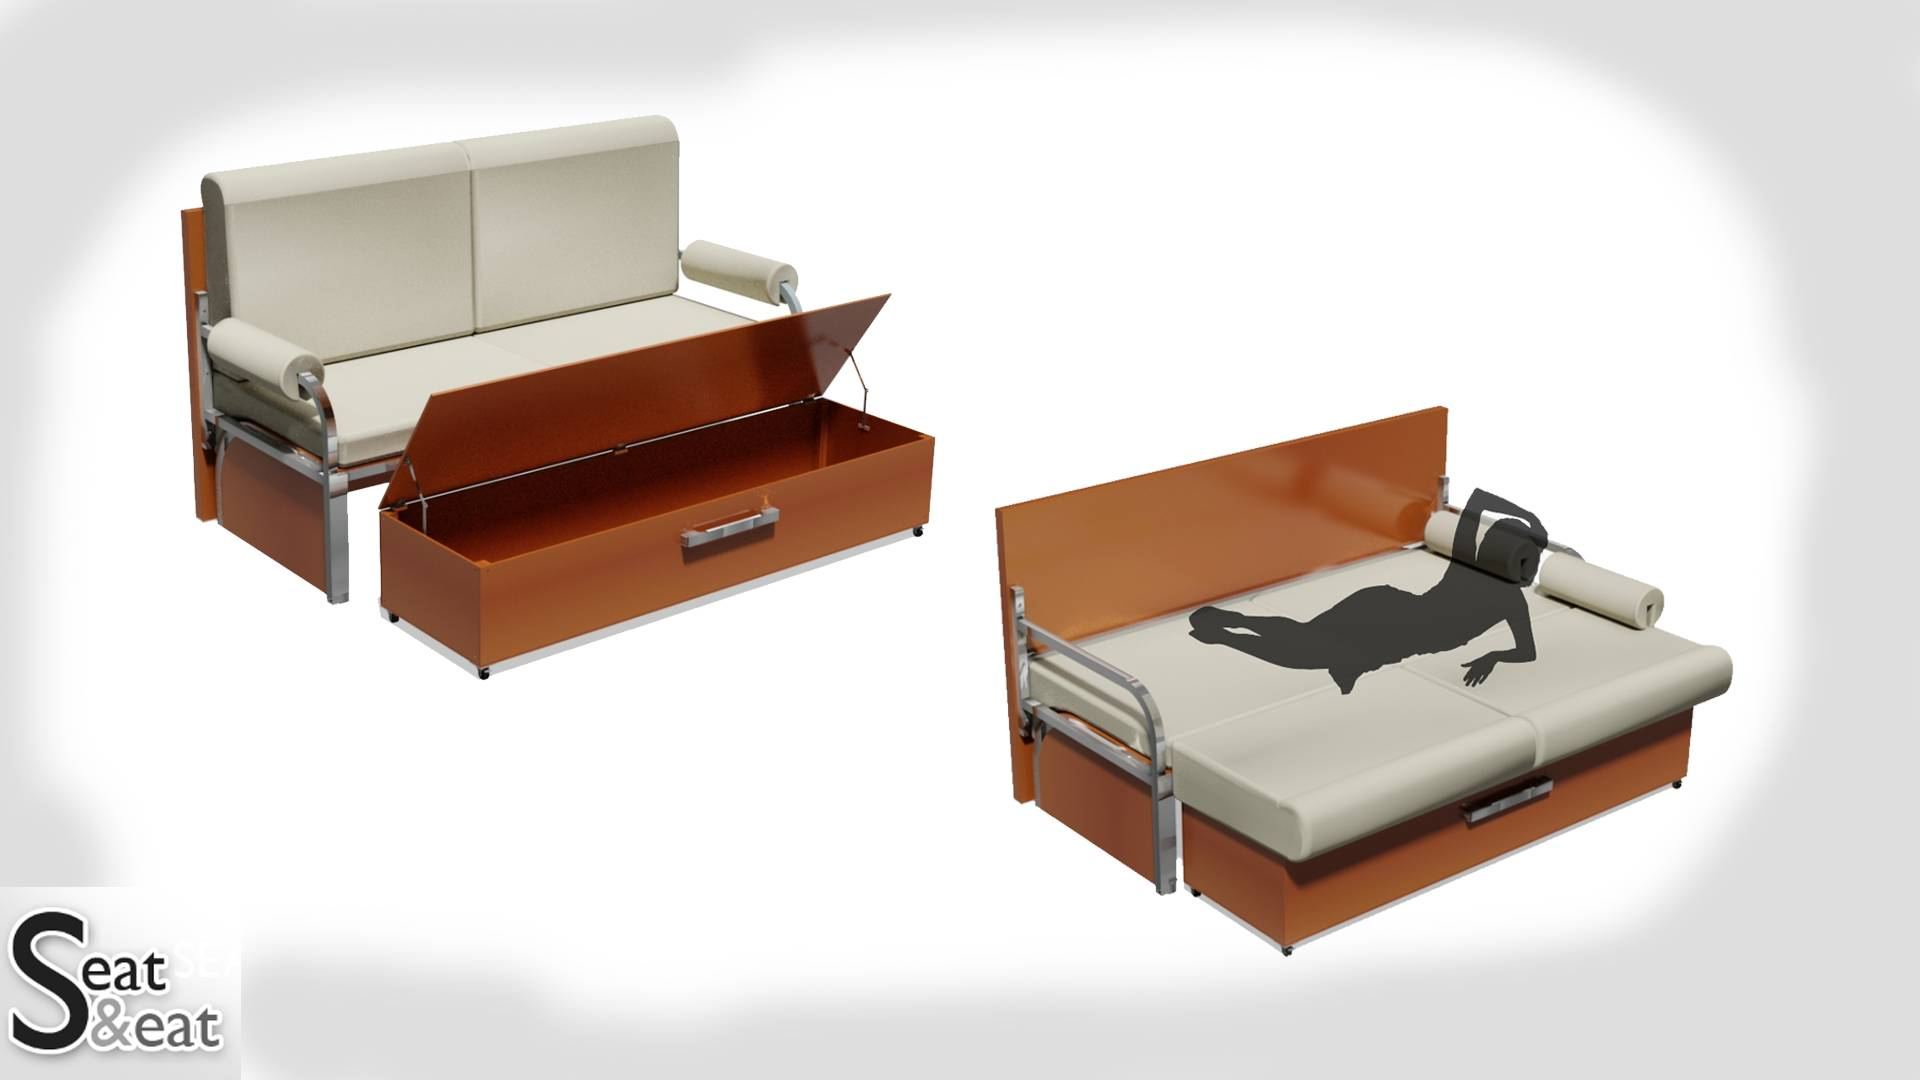 Space Saving Beds Inspirational the Multifunctional Seating